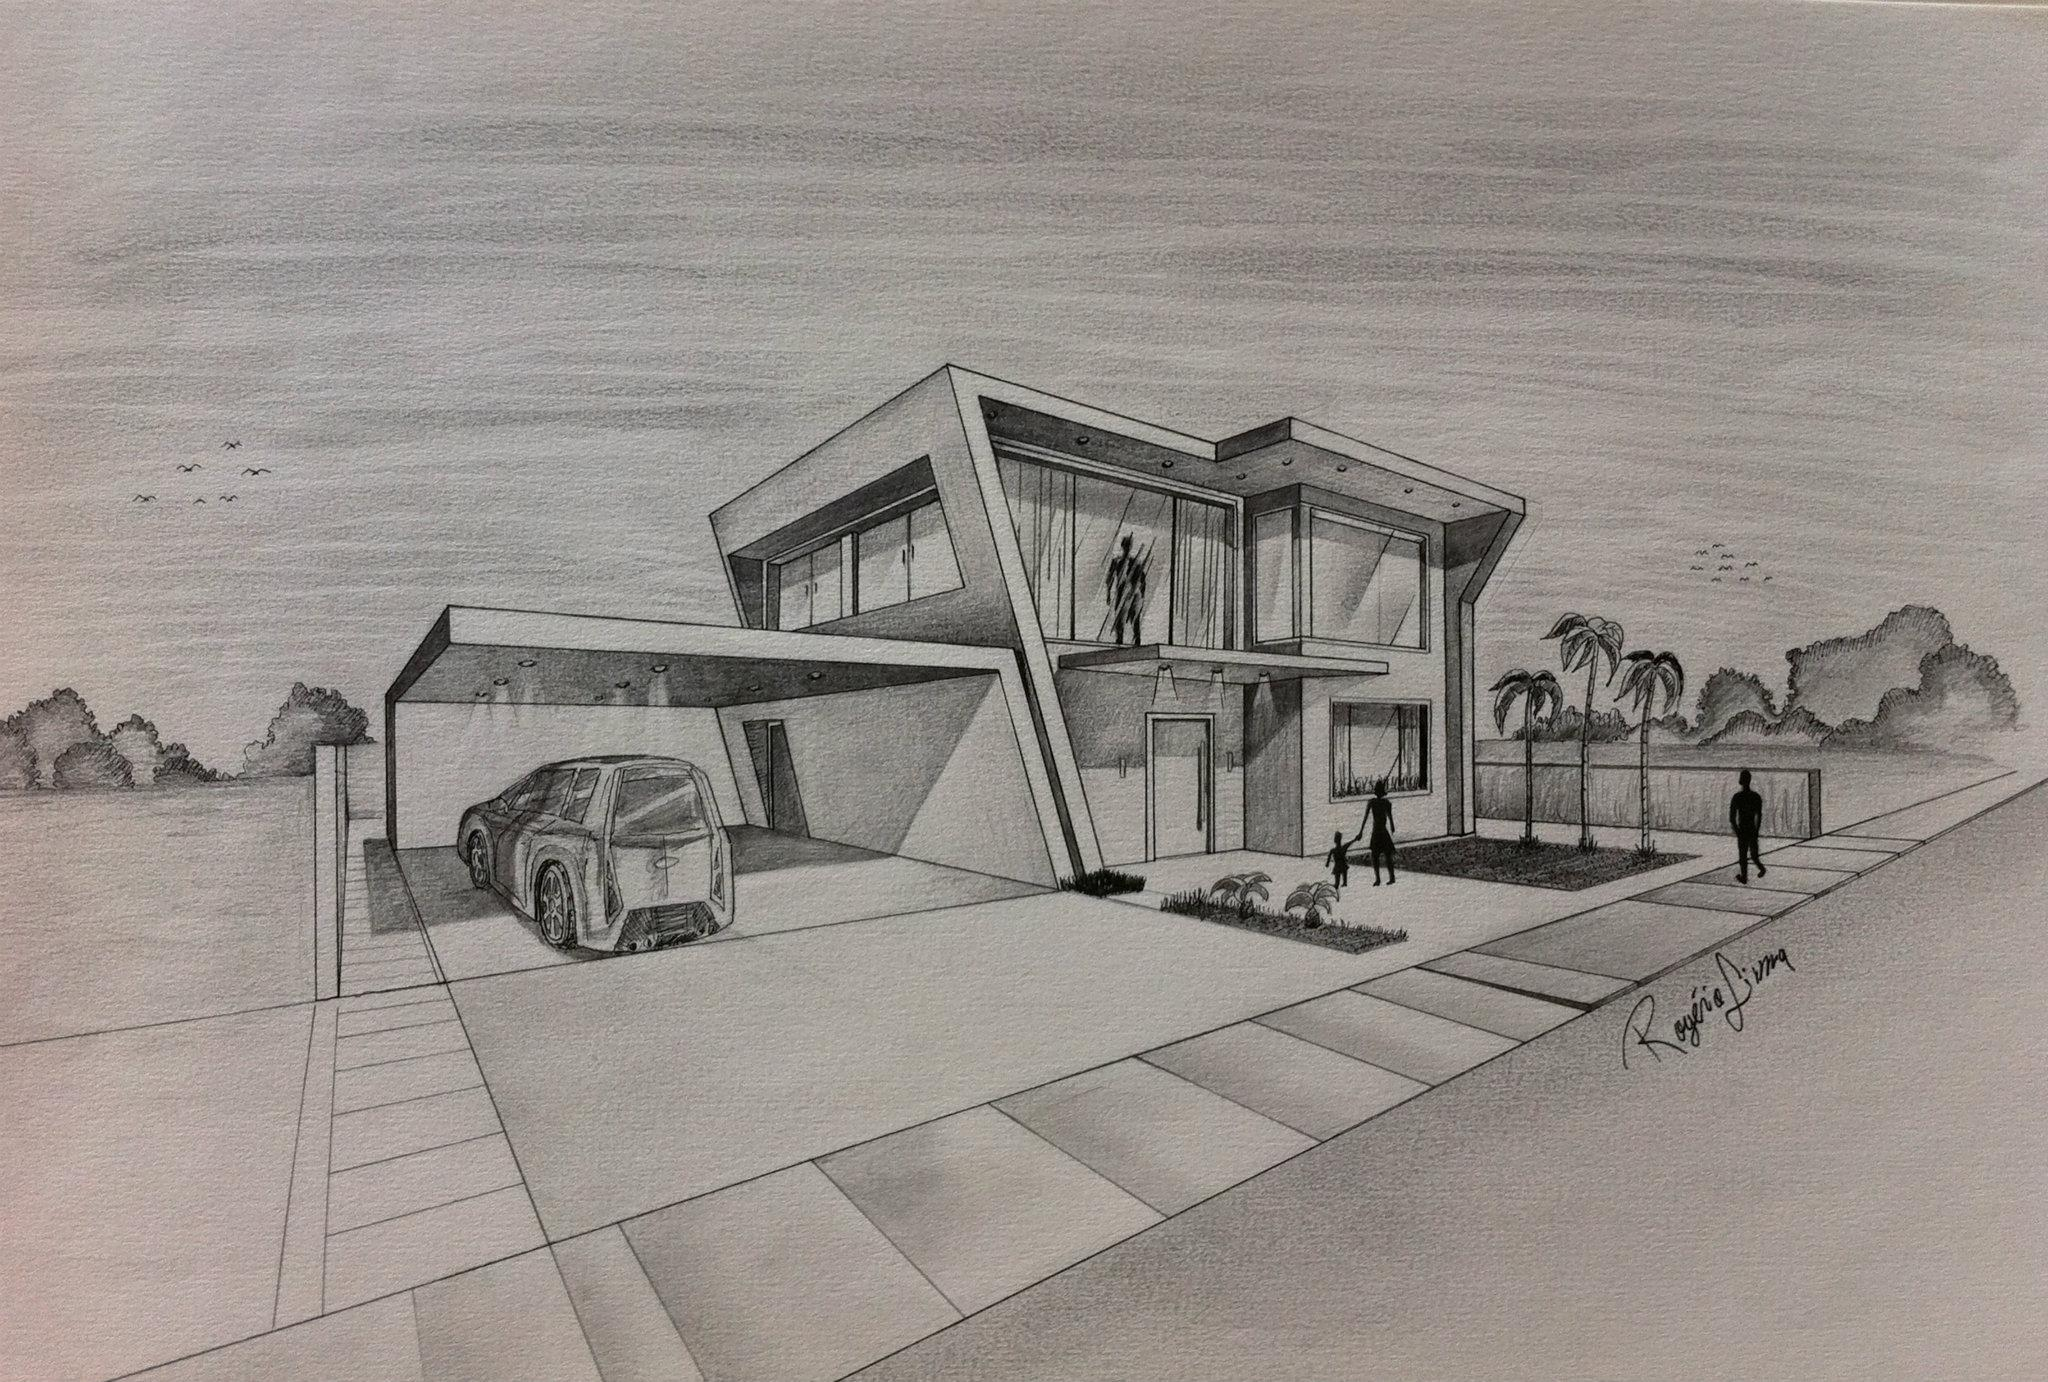 Architect hand drawing at free for for Draw house plans on computer